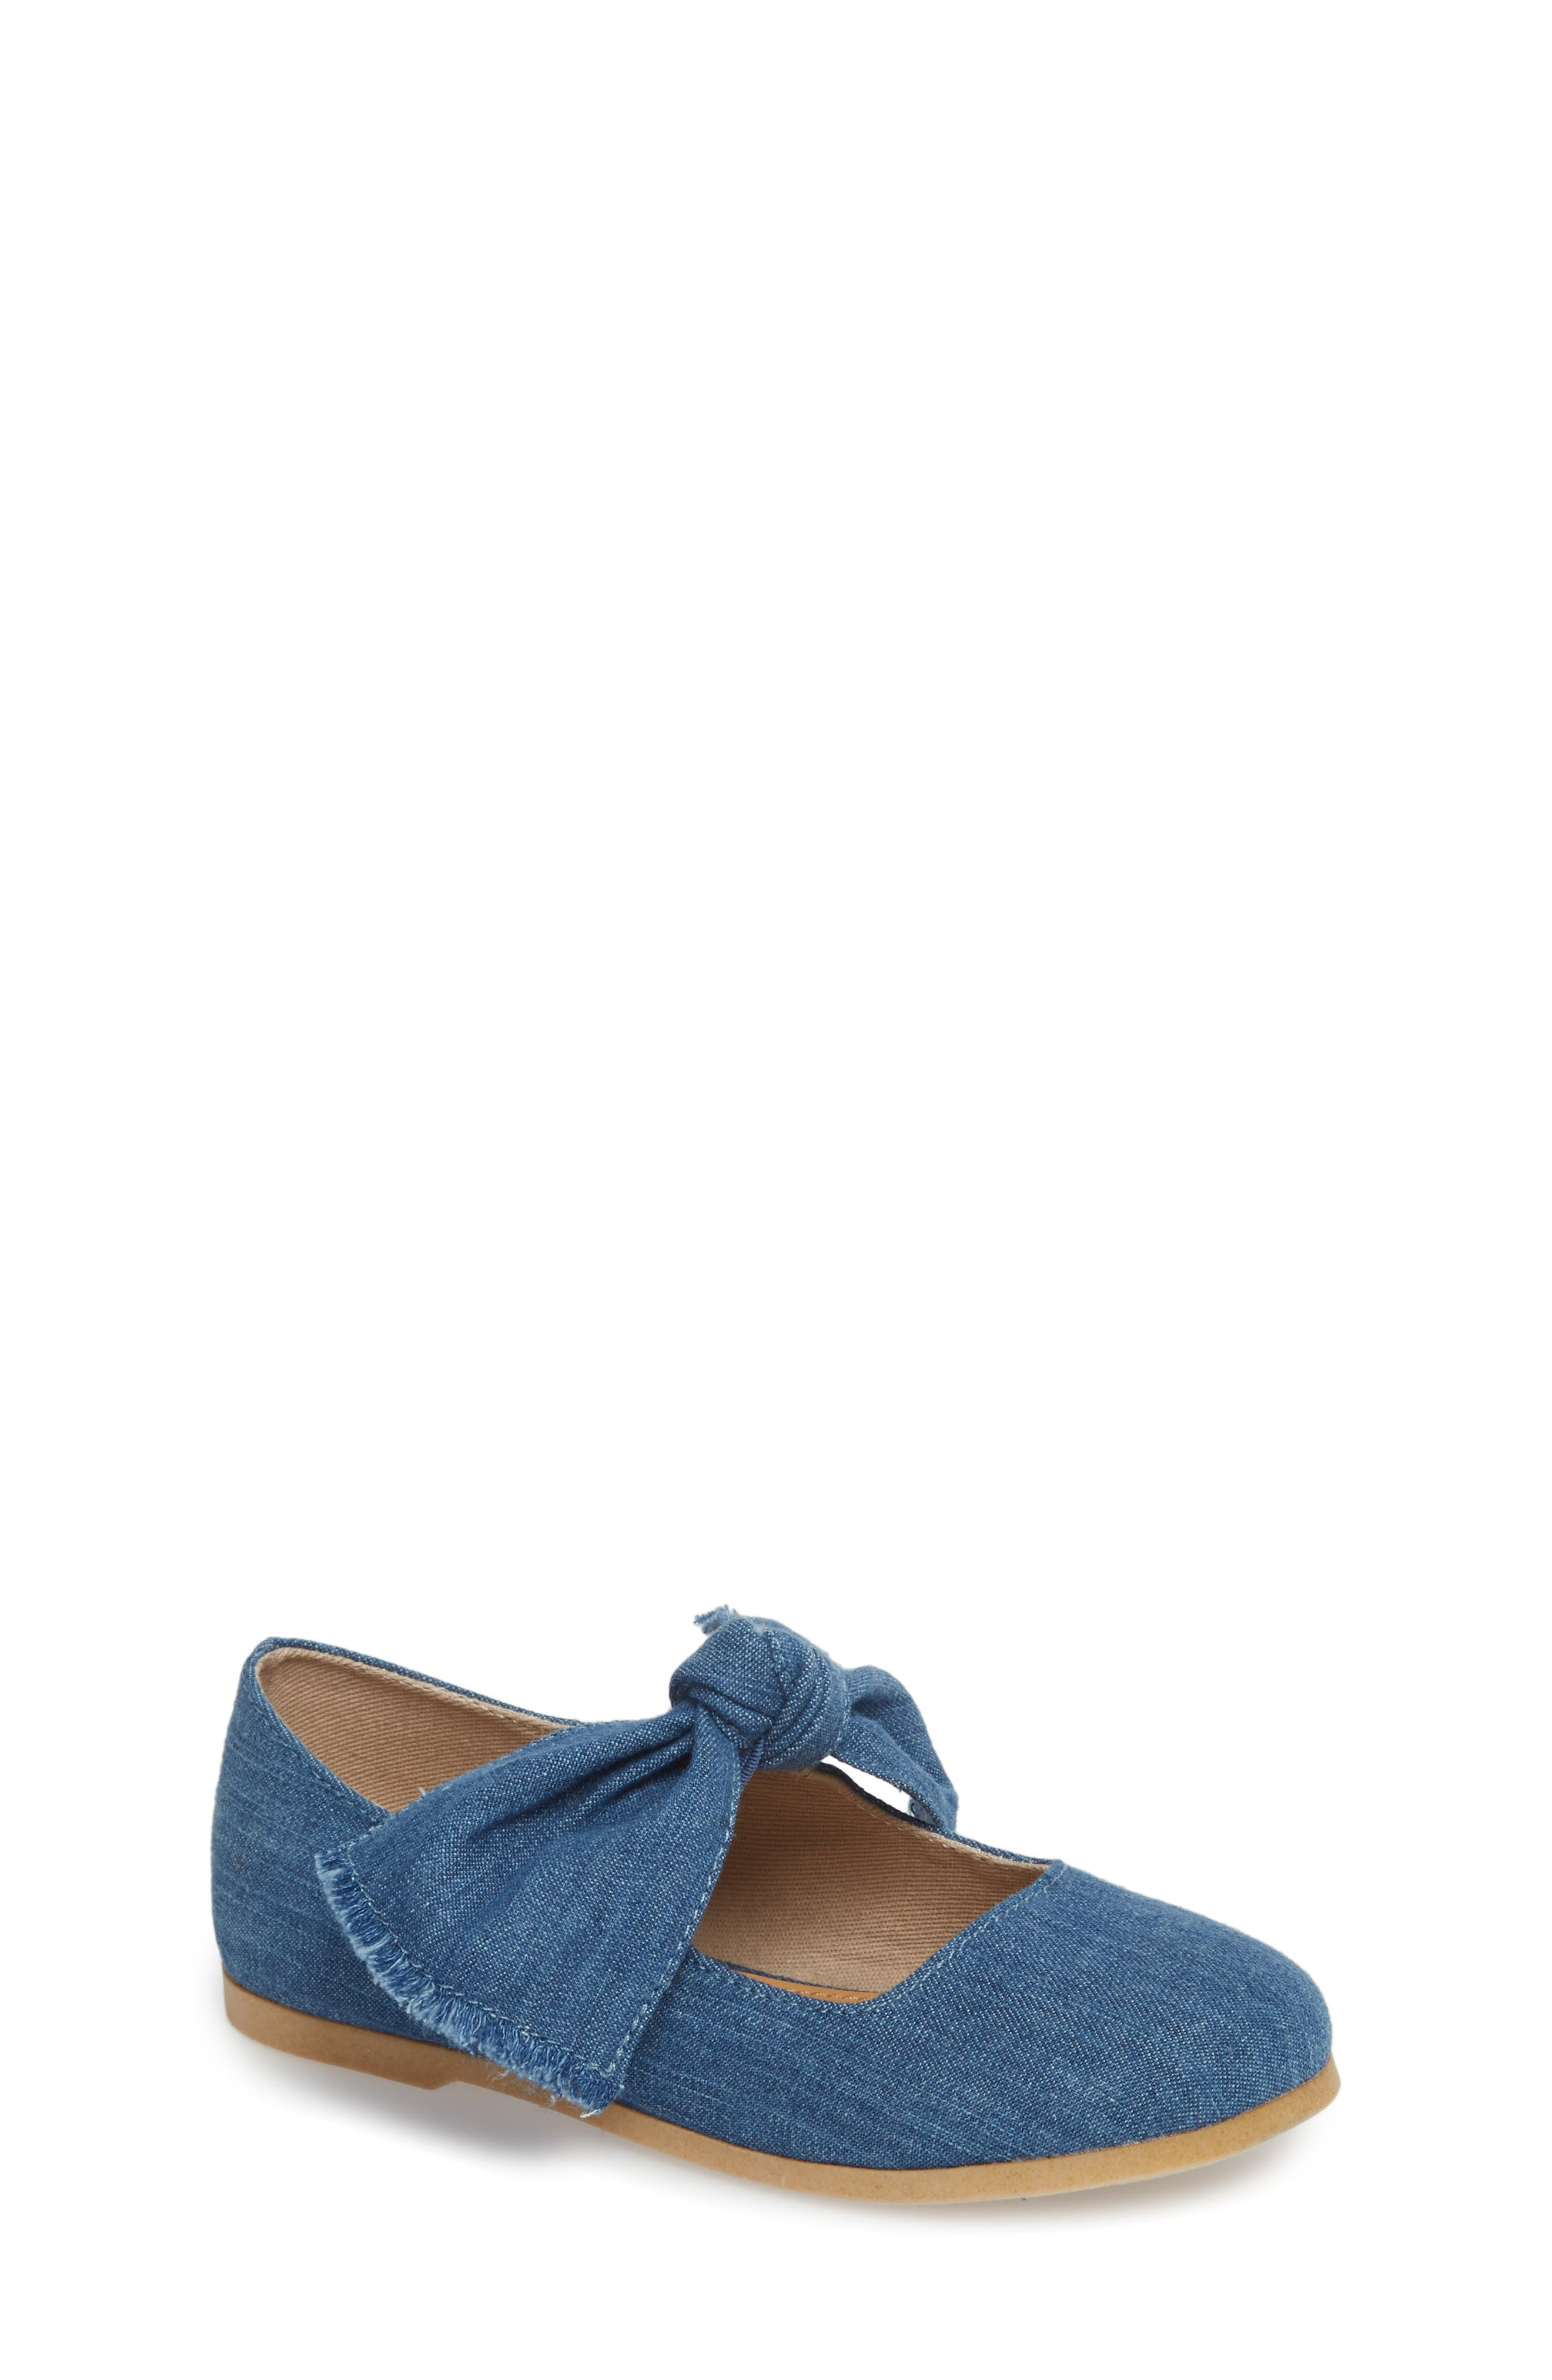 Helina Bow Mary Jane Flat,                         Main,                         color, Chambray Fabric